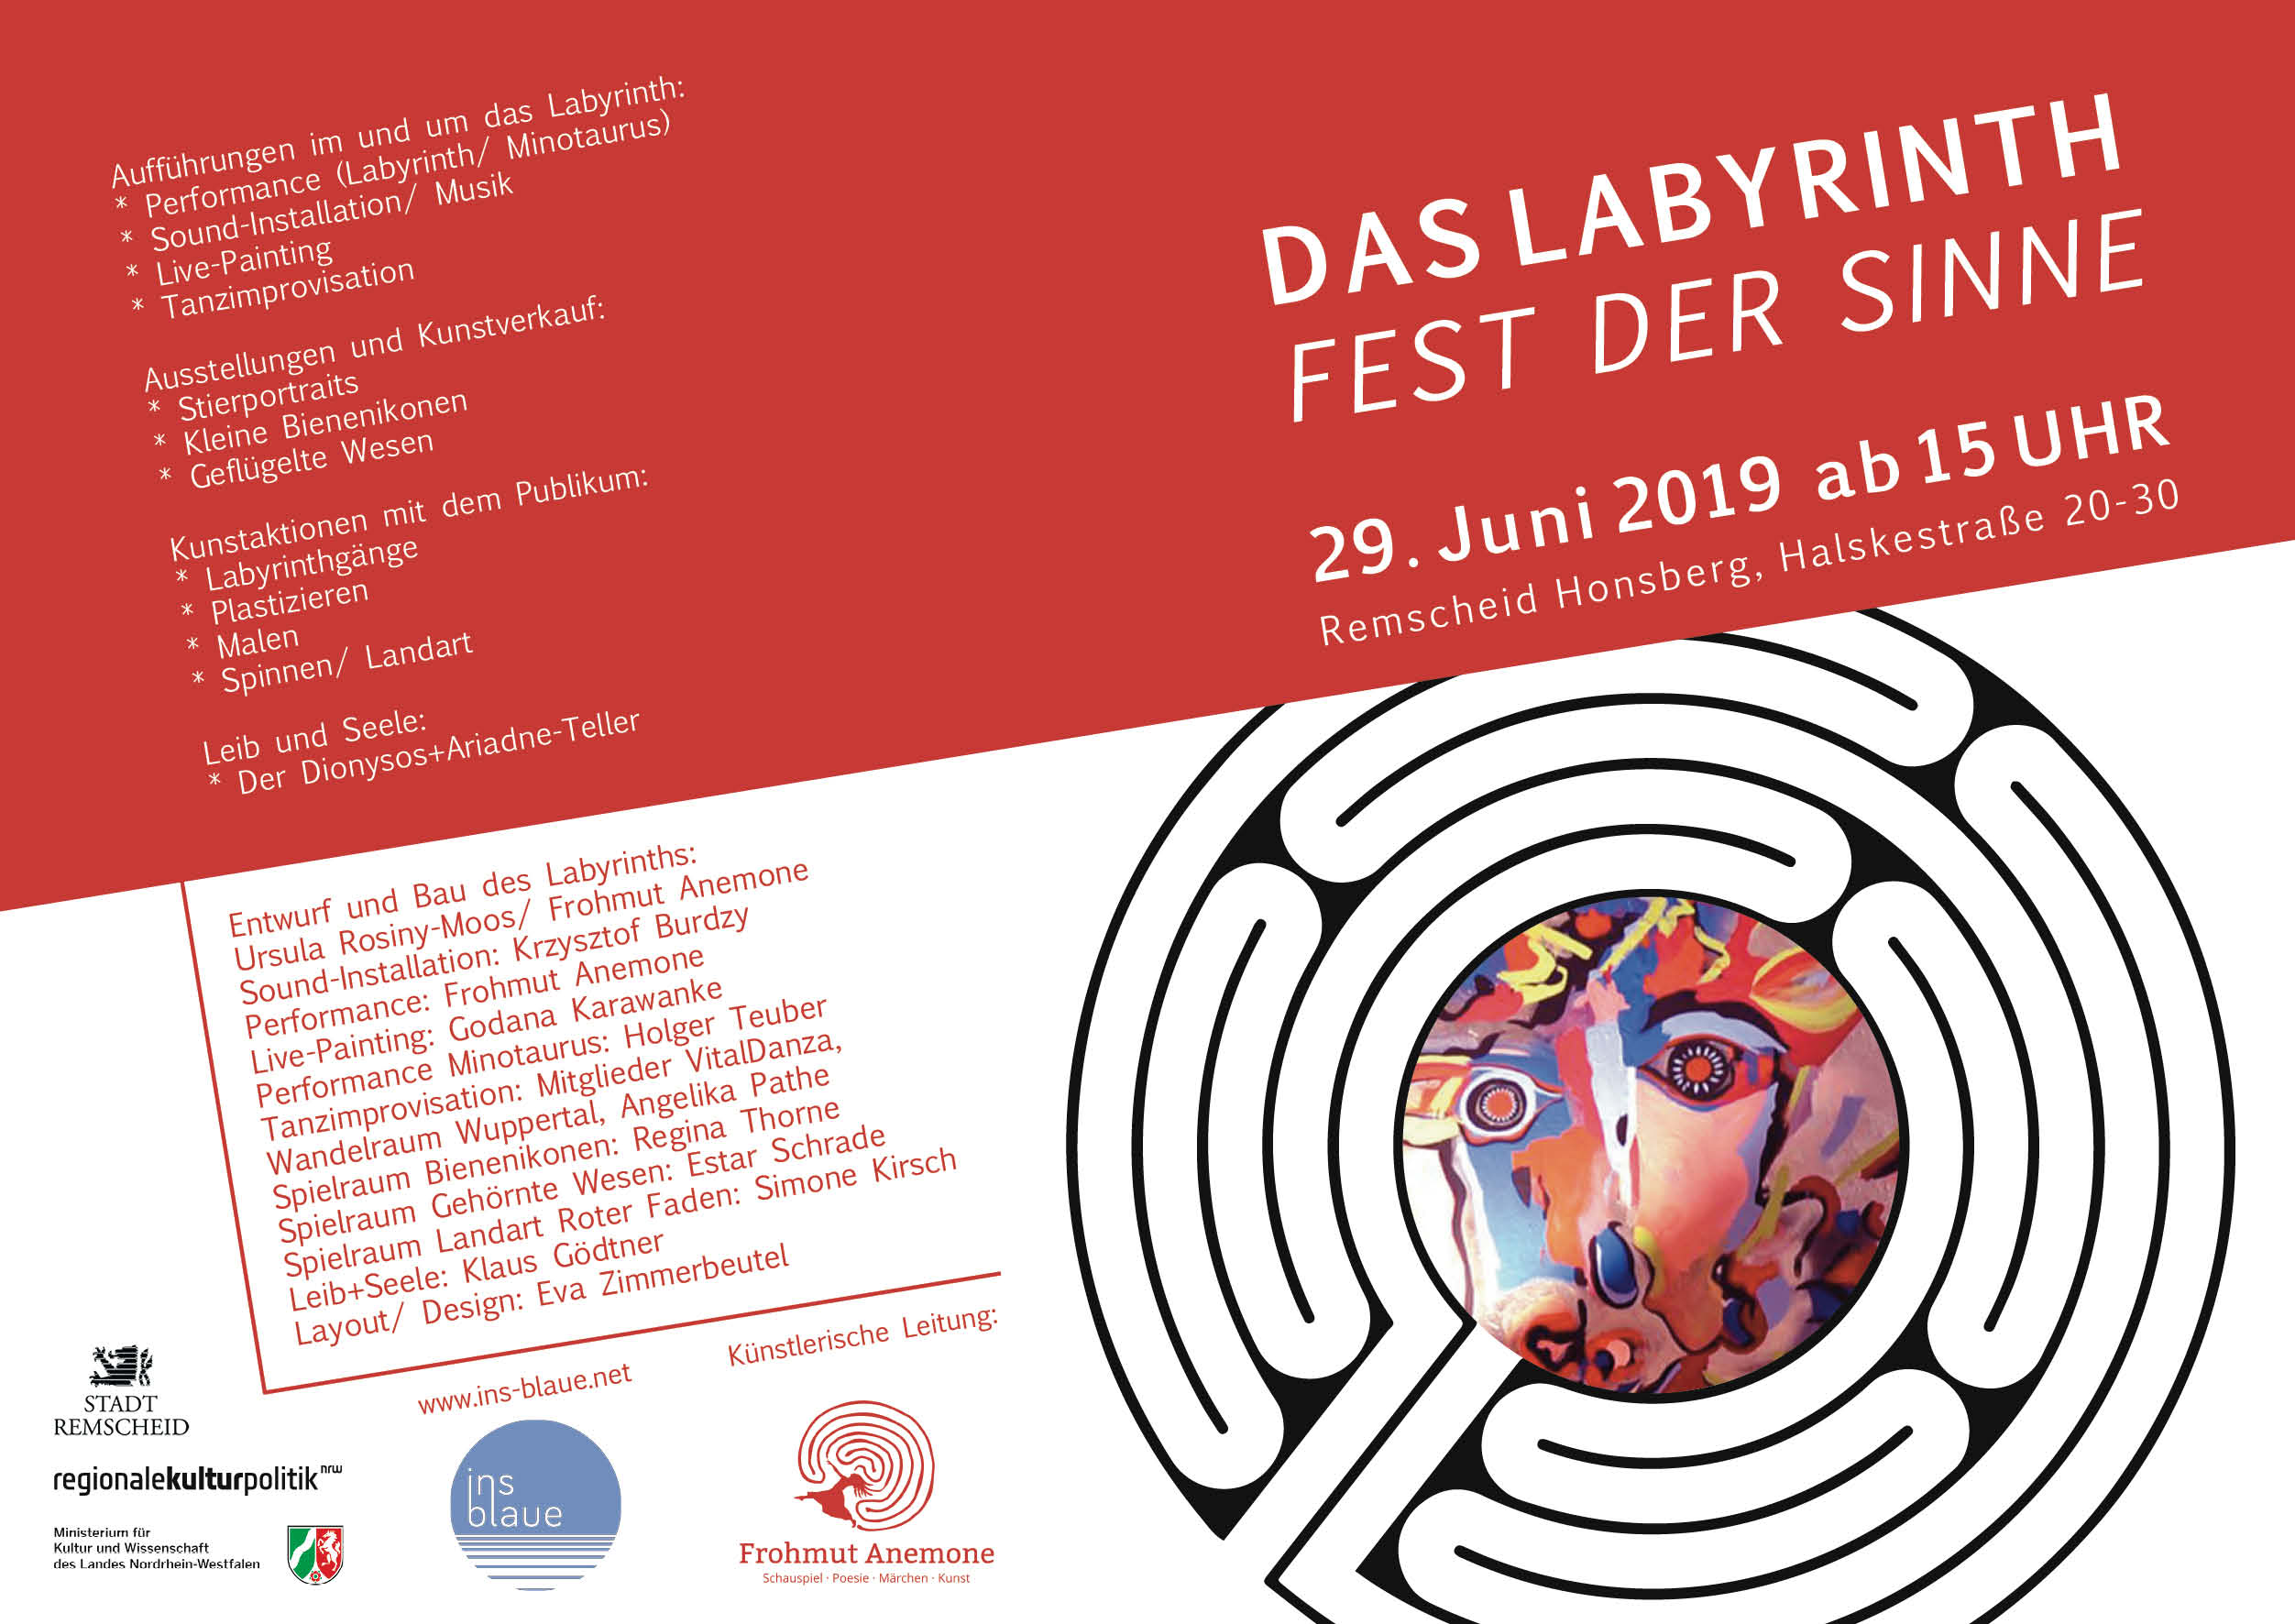 Das Labyrinth -  Flyer